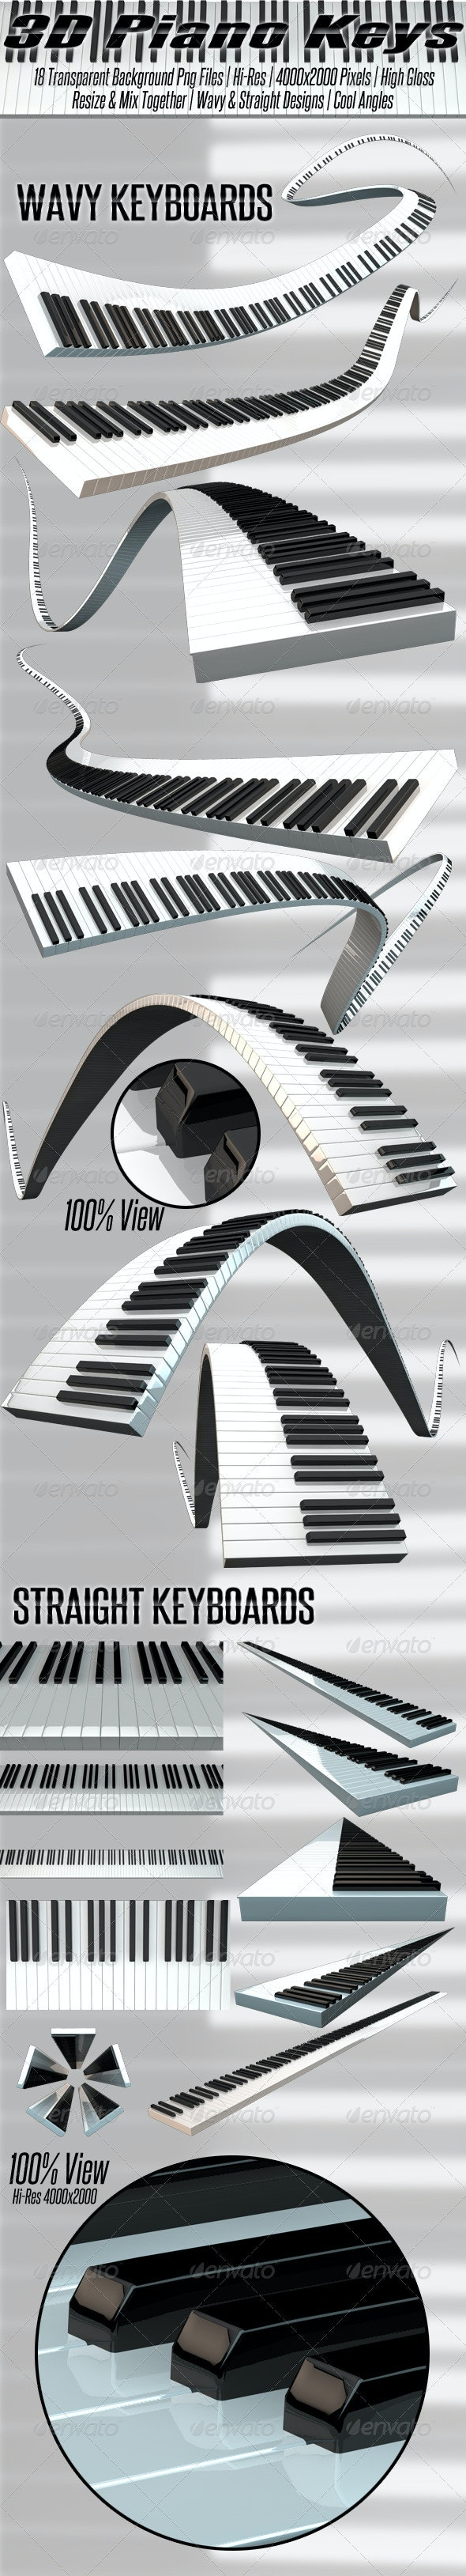 3D Rendered Piano Keyboards - Objects 3D Renders